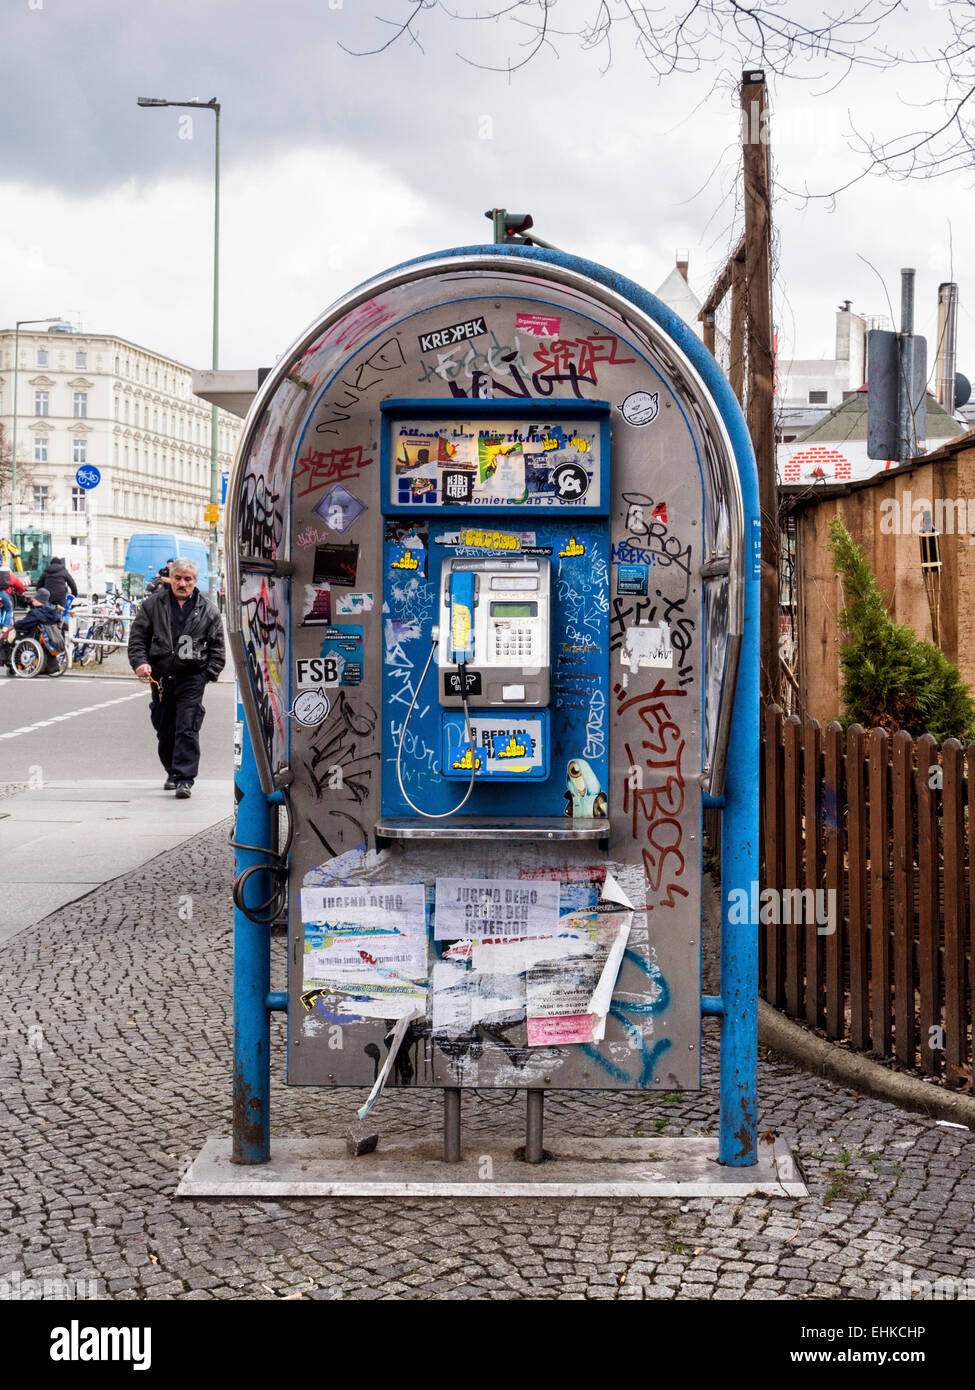 Graffiti covered and dilapidated public telephone box in Berlin street - Stock Image